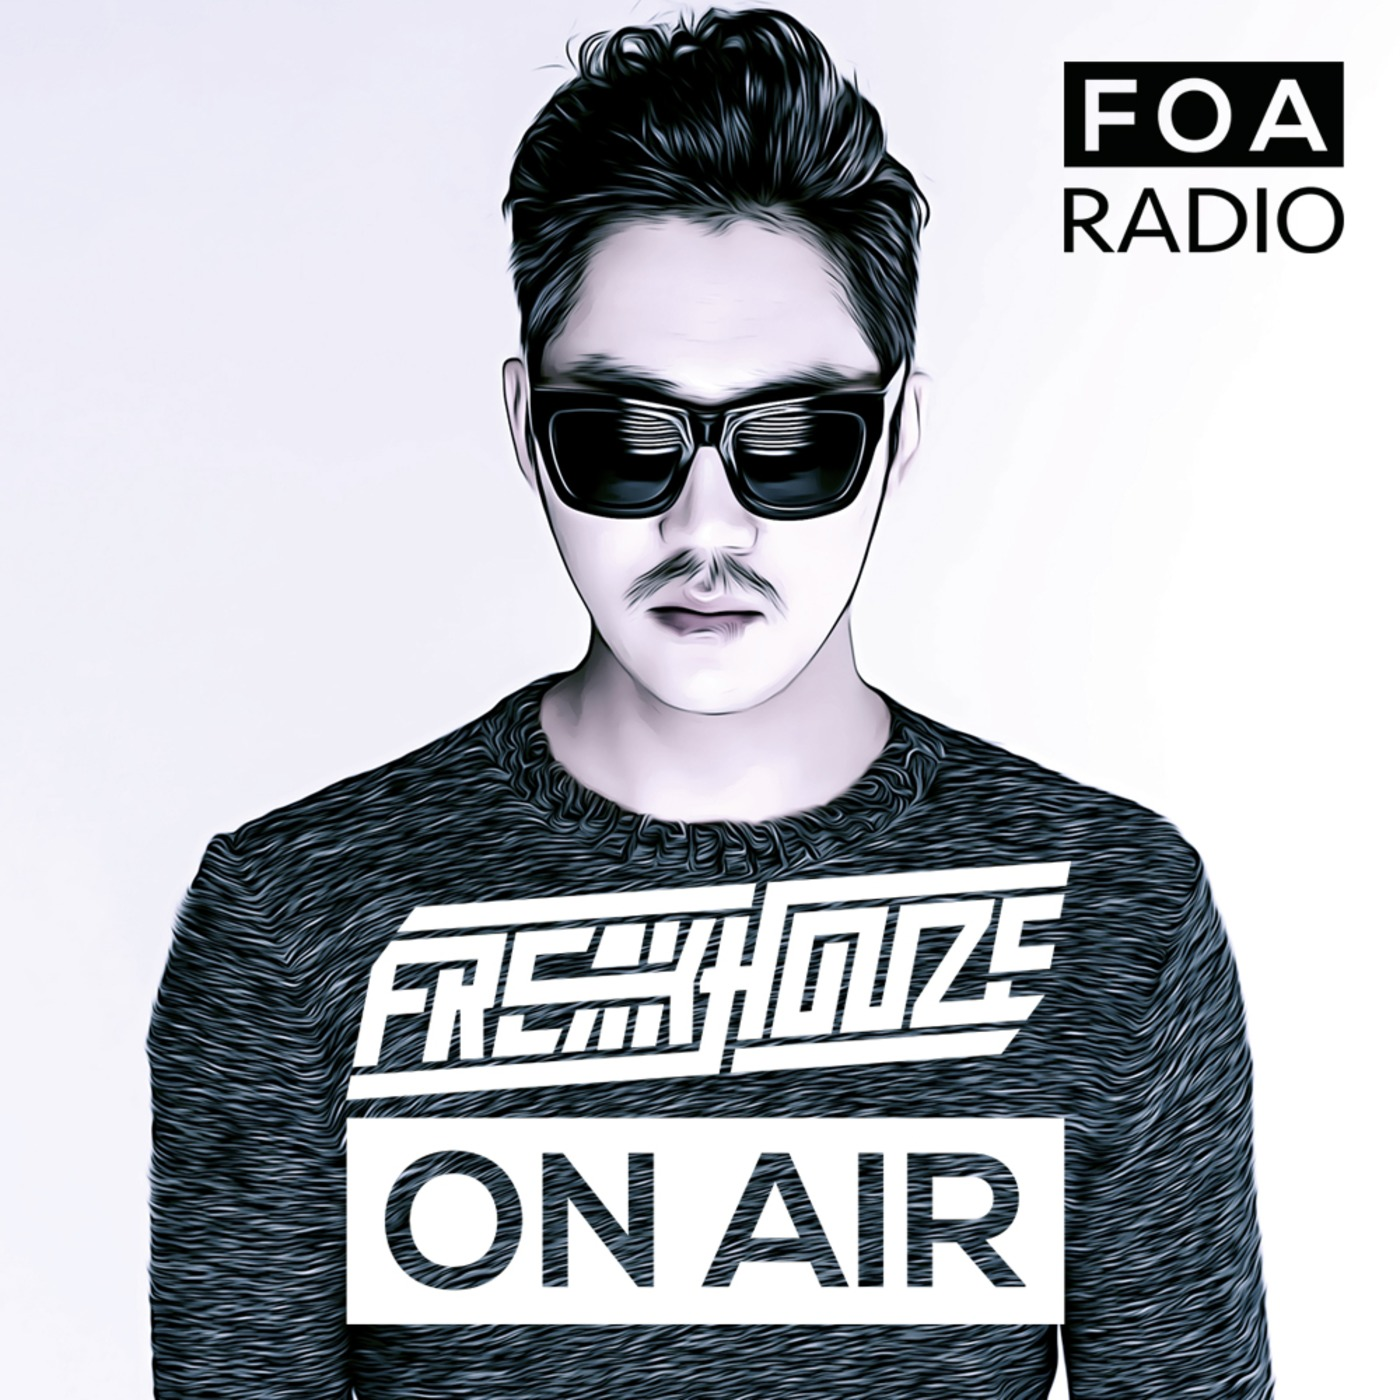 Freakhouze On Air